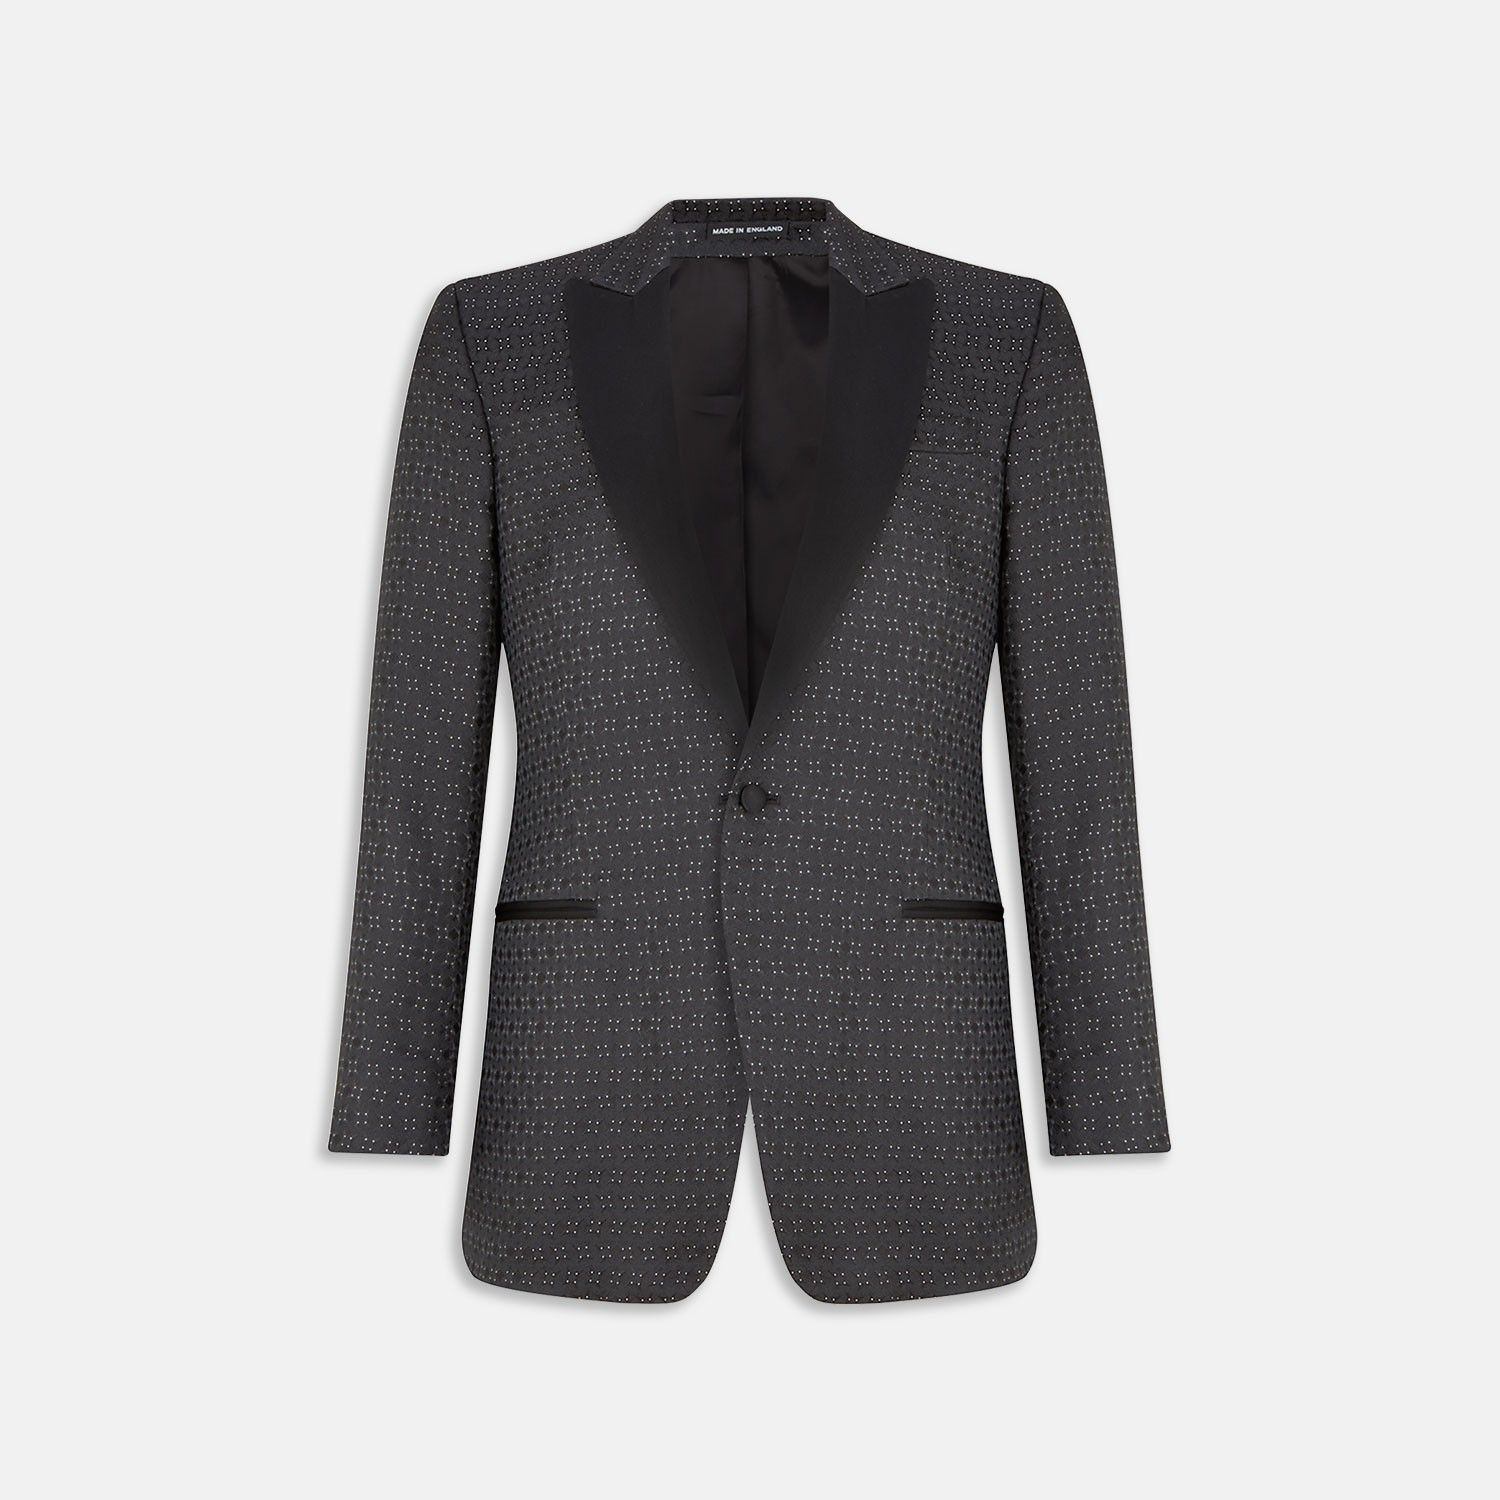 299168a1194 Exclusive Triangle Shiny Dots Black Silk Tuxedo Jacket - Blazers -  Outerwear - Clothing